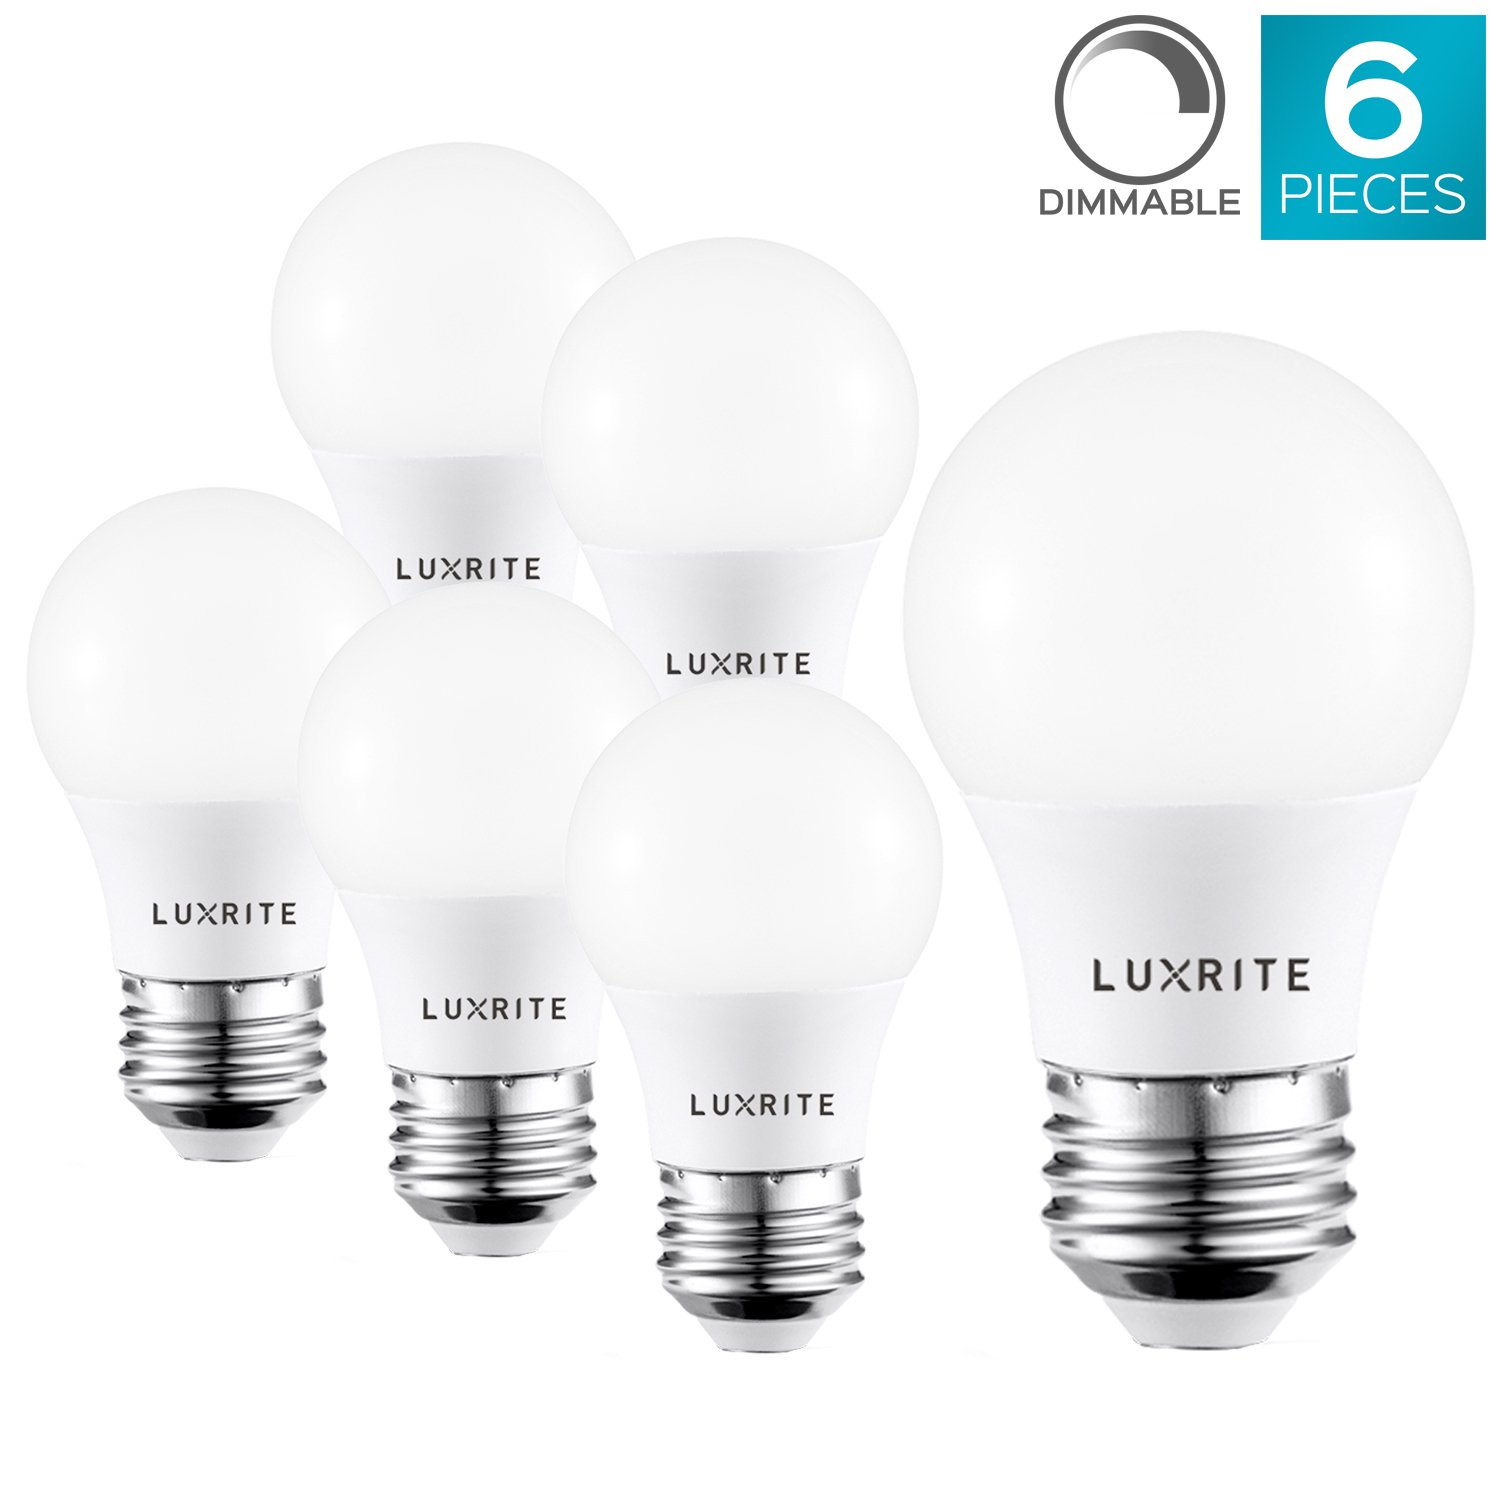 Luxrite A15 LED Light Bulb, 40W Equivalent, 3000K Warm White ...